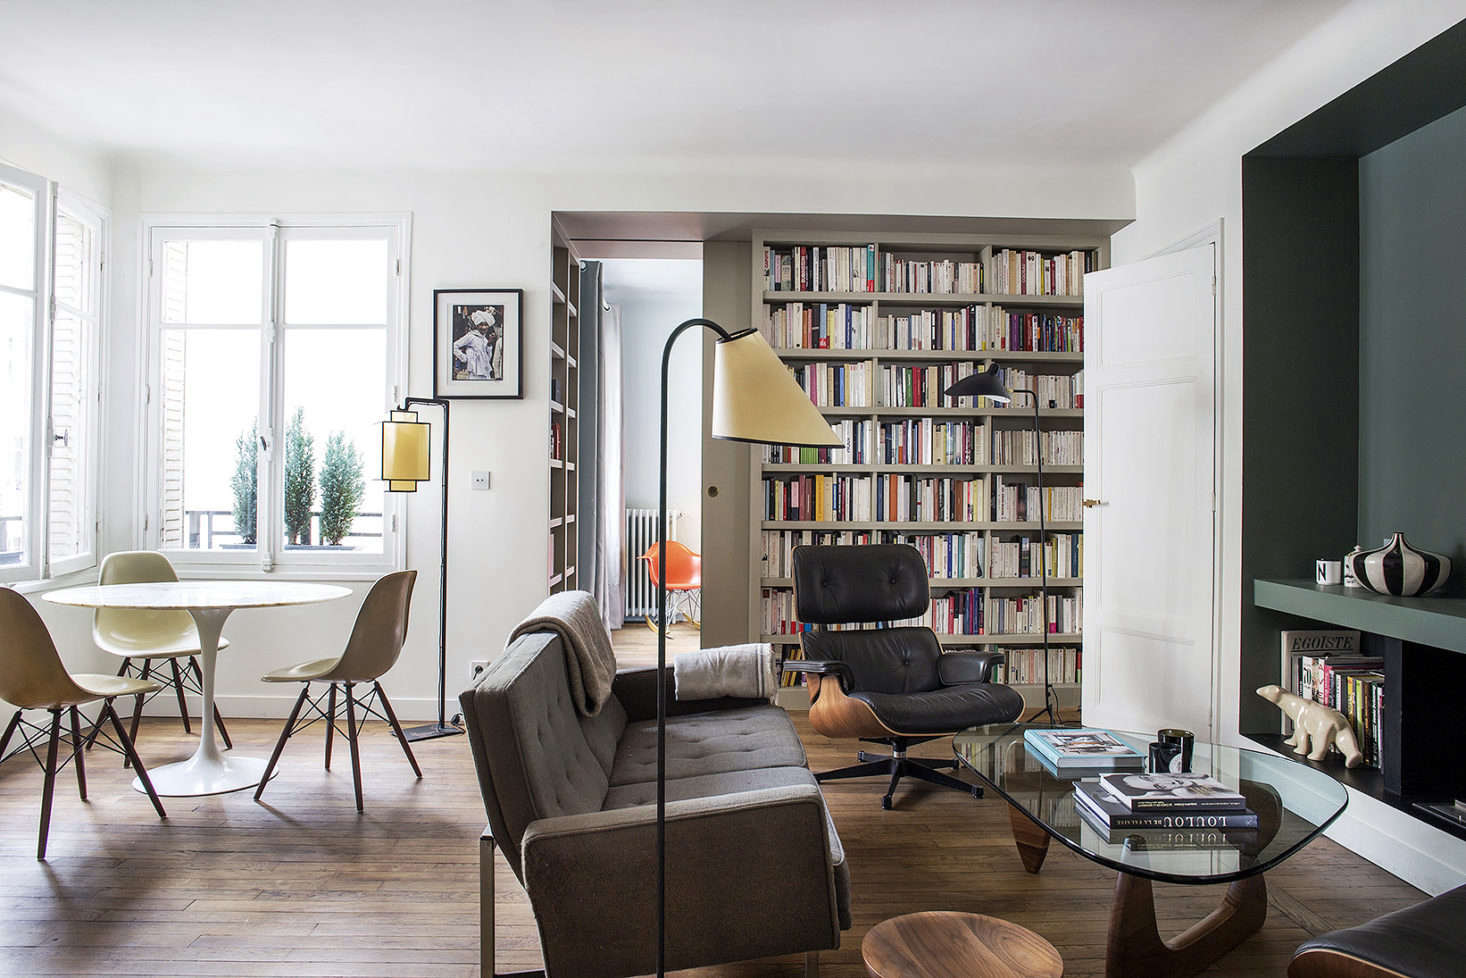 12 Picturesque Small Living Room Design: 9 Small-Space Ideas To Steal From A Tiny Paris Apartment